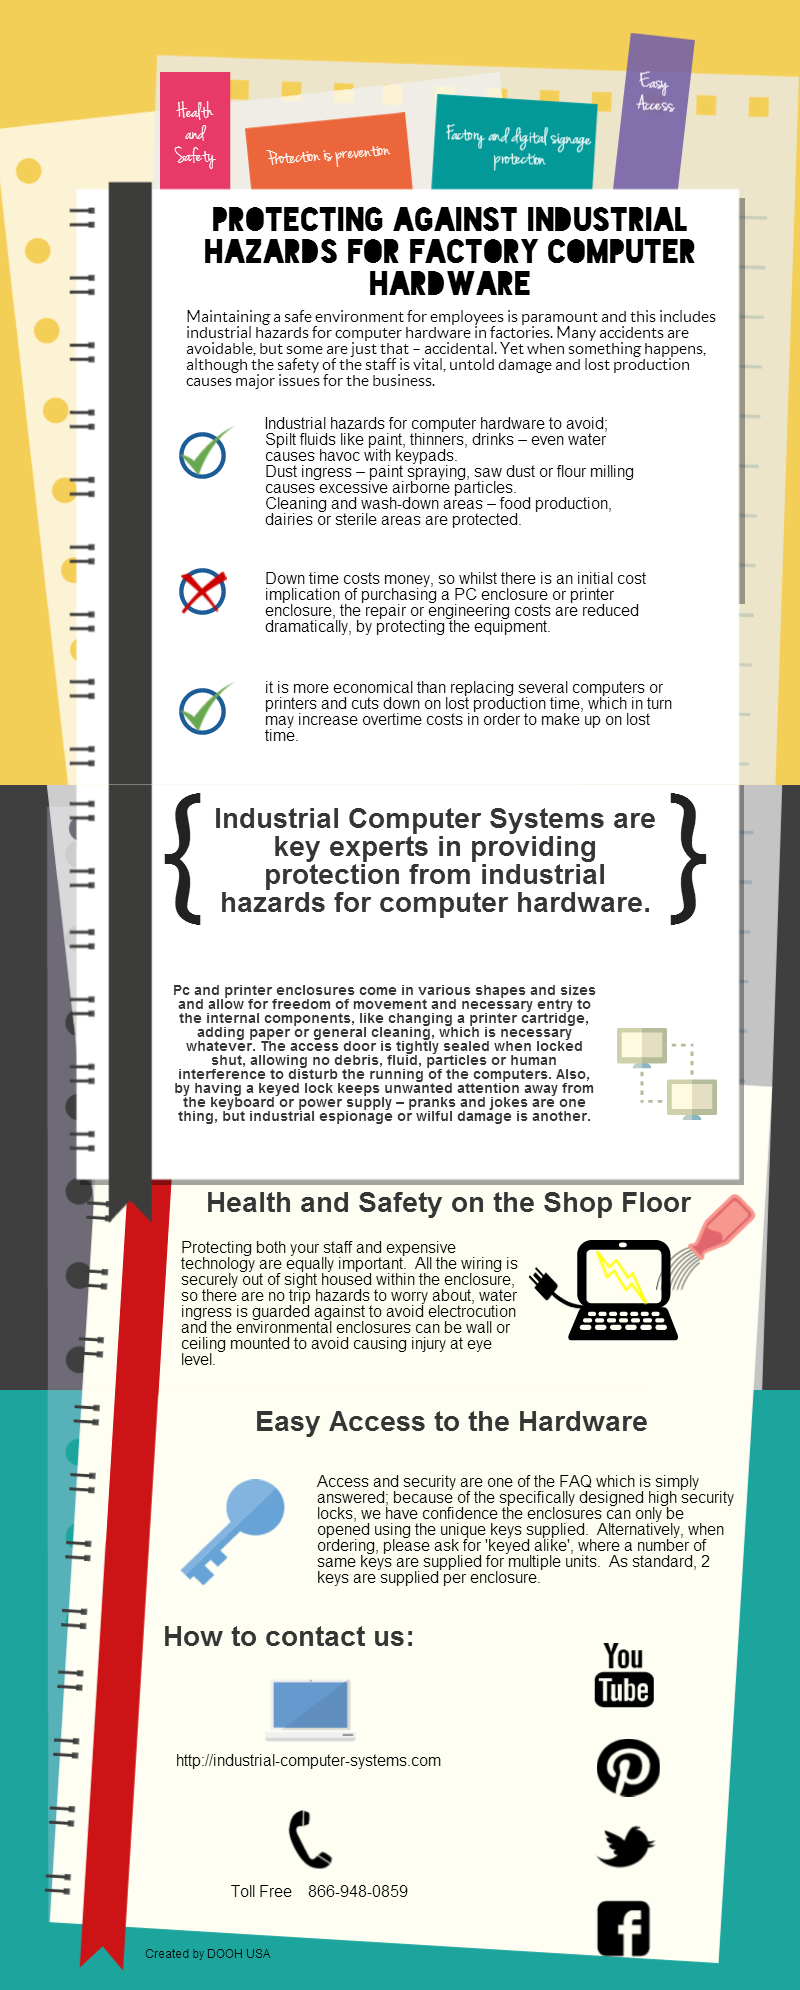 Protecting Against Industrial Hazards for Factor Computers